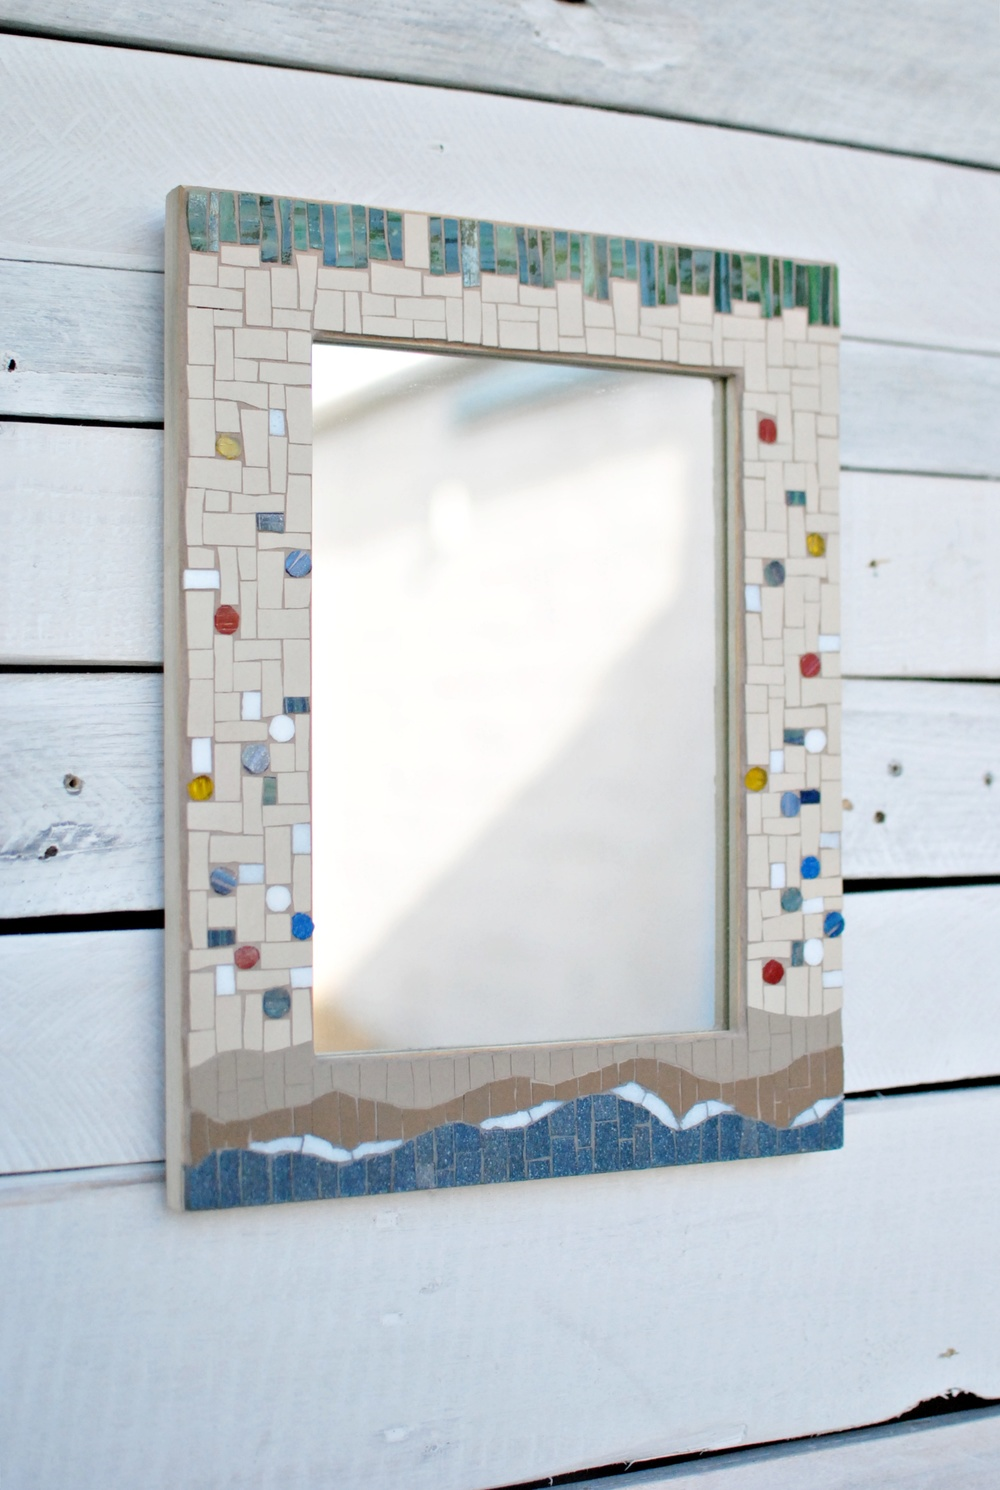 Beach-mosaic-mirror-PH2015.jpg